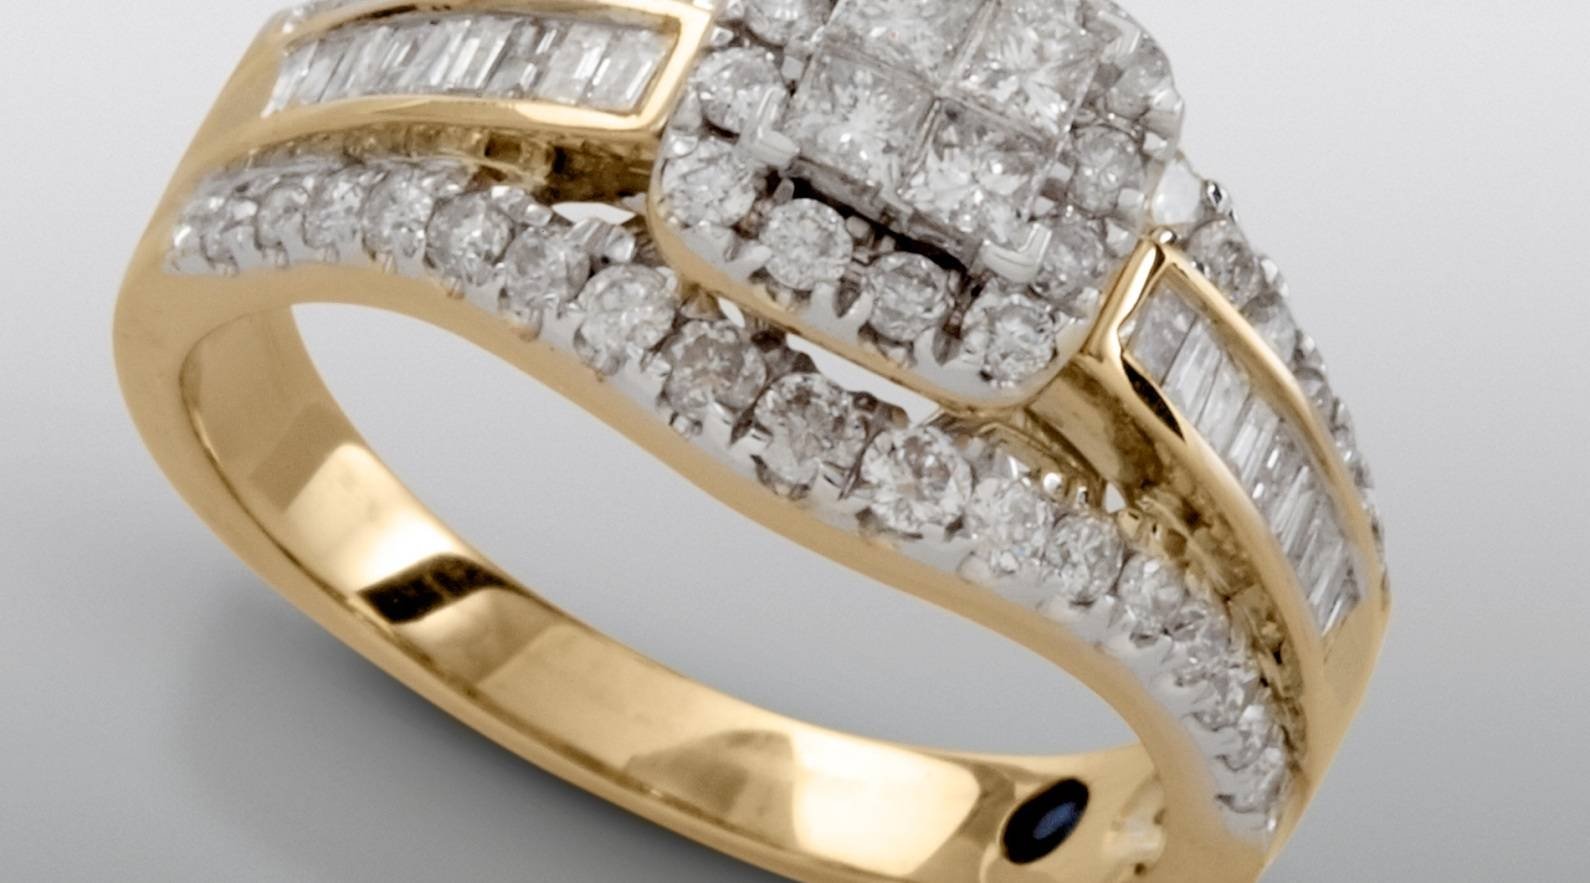 Engagement Rings : Wedding Rings Stunning Engagement Rings Sears With Regard To Engagement Rings At Sears (View 13 of 15)